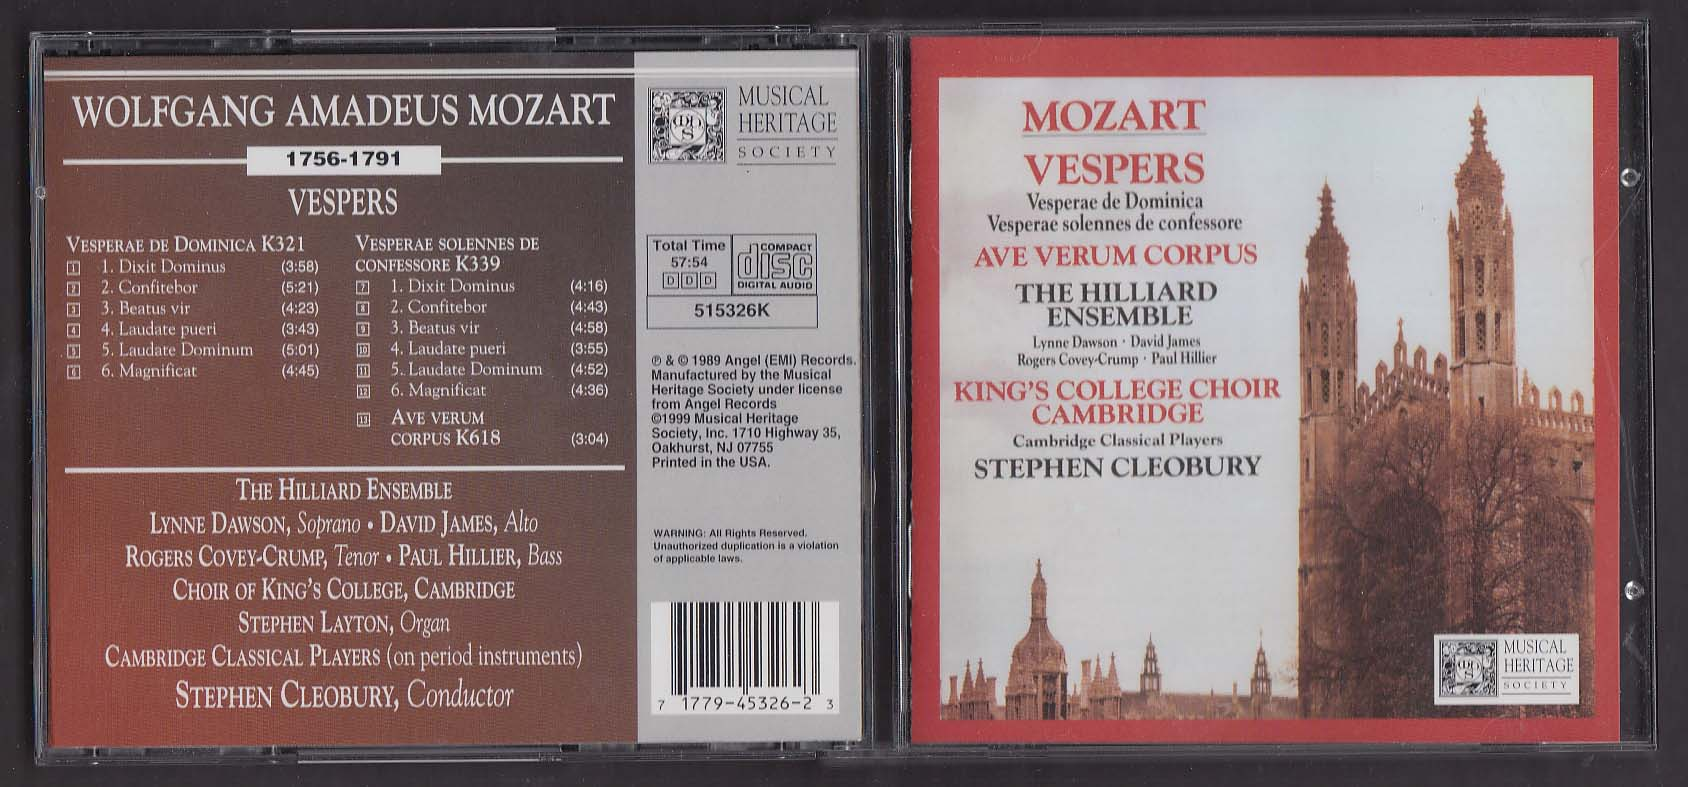 Image for Mozart Vespers Stephen Cleobury Musical Heritage Society 515326K CD 1999